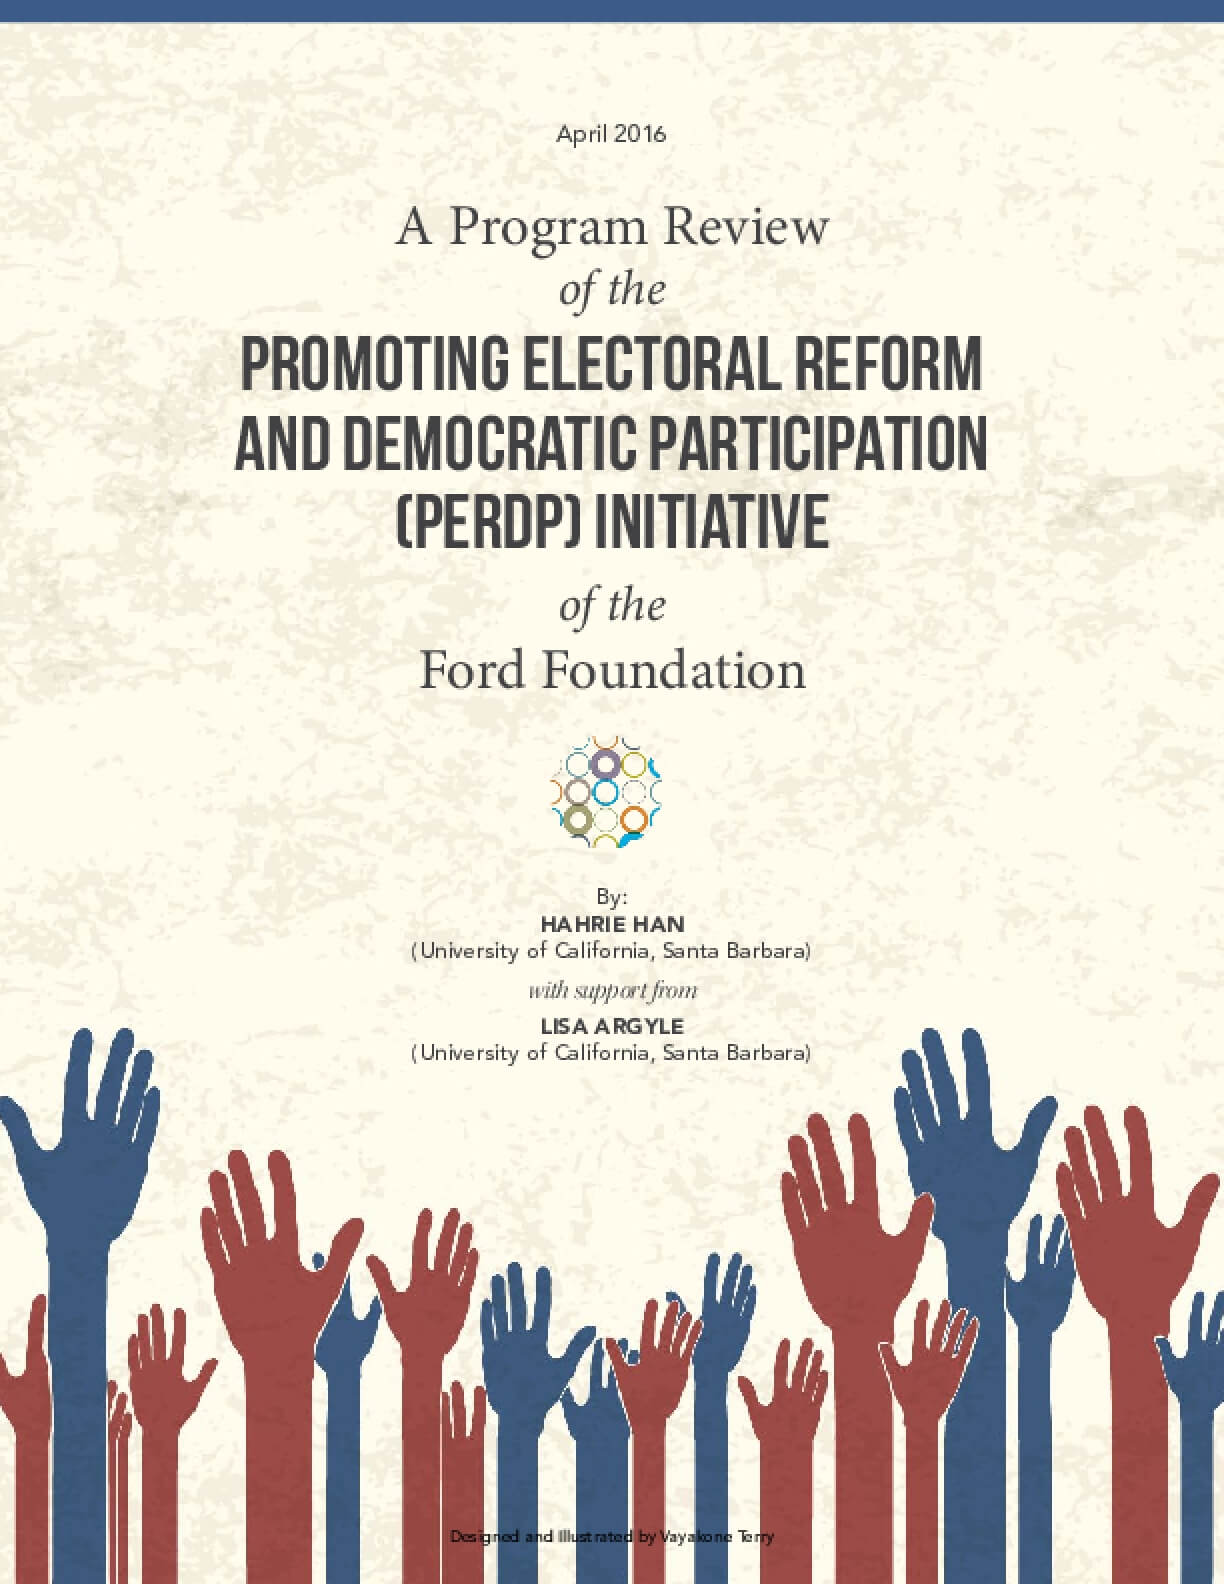 A Program Review of the Promoting Electoral Reform and Democratic Participation (PERDP) Initiative of the Ford Foundation